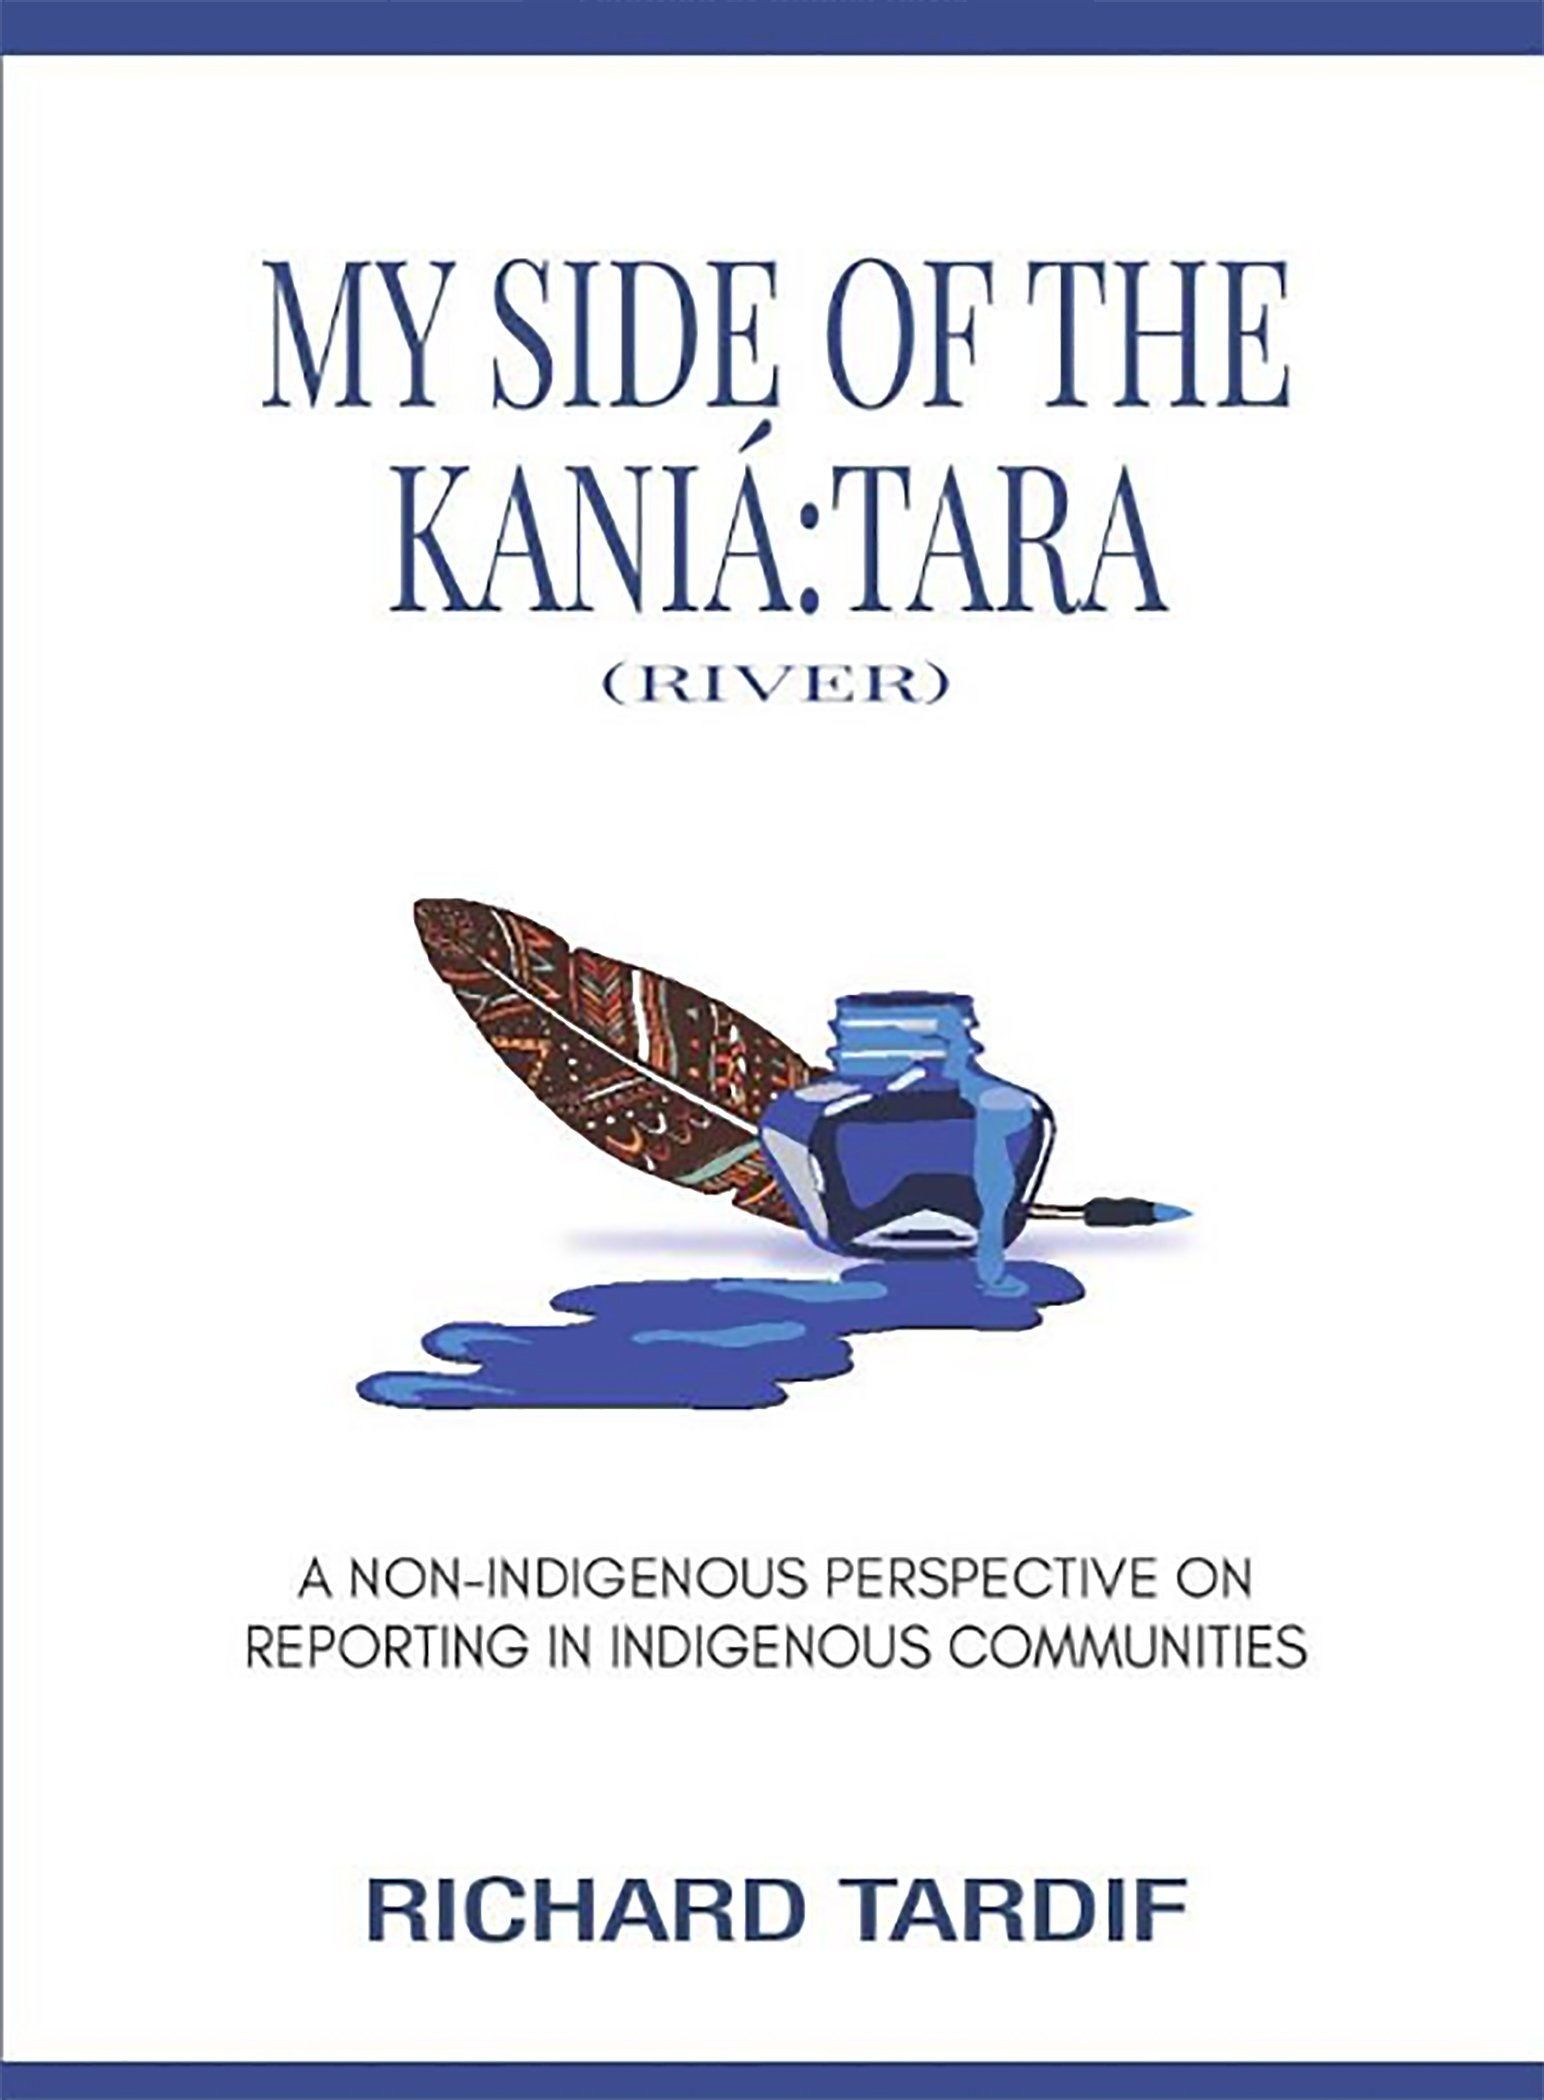 MySide Of The Kania-tara_Richard Tardif